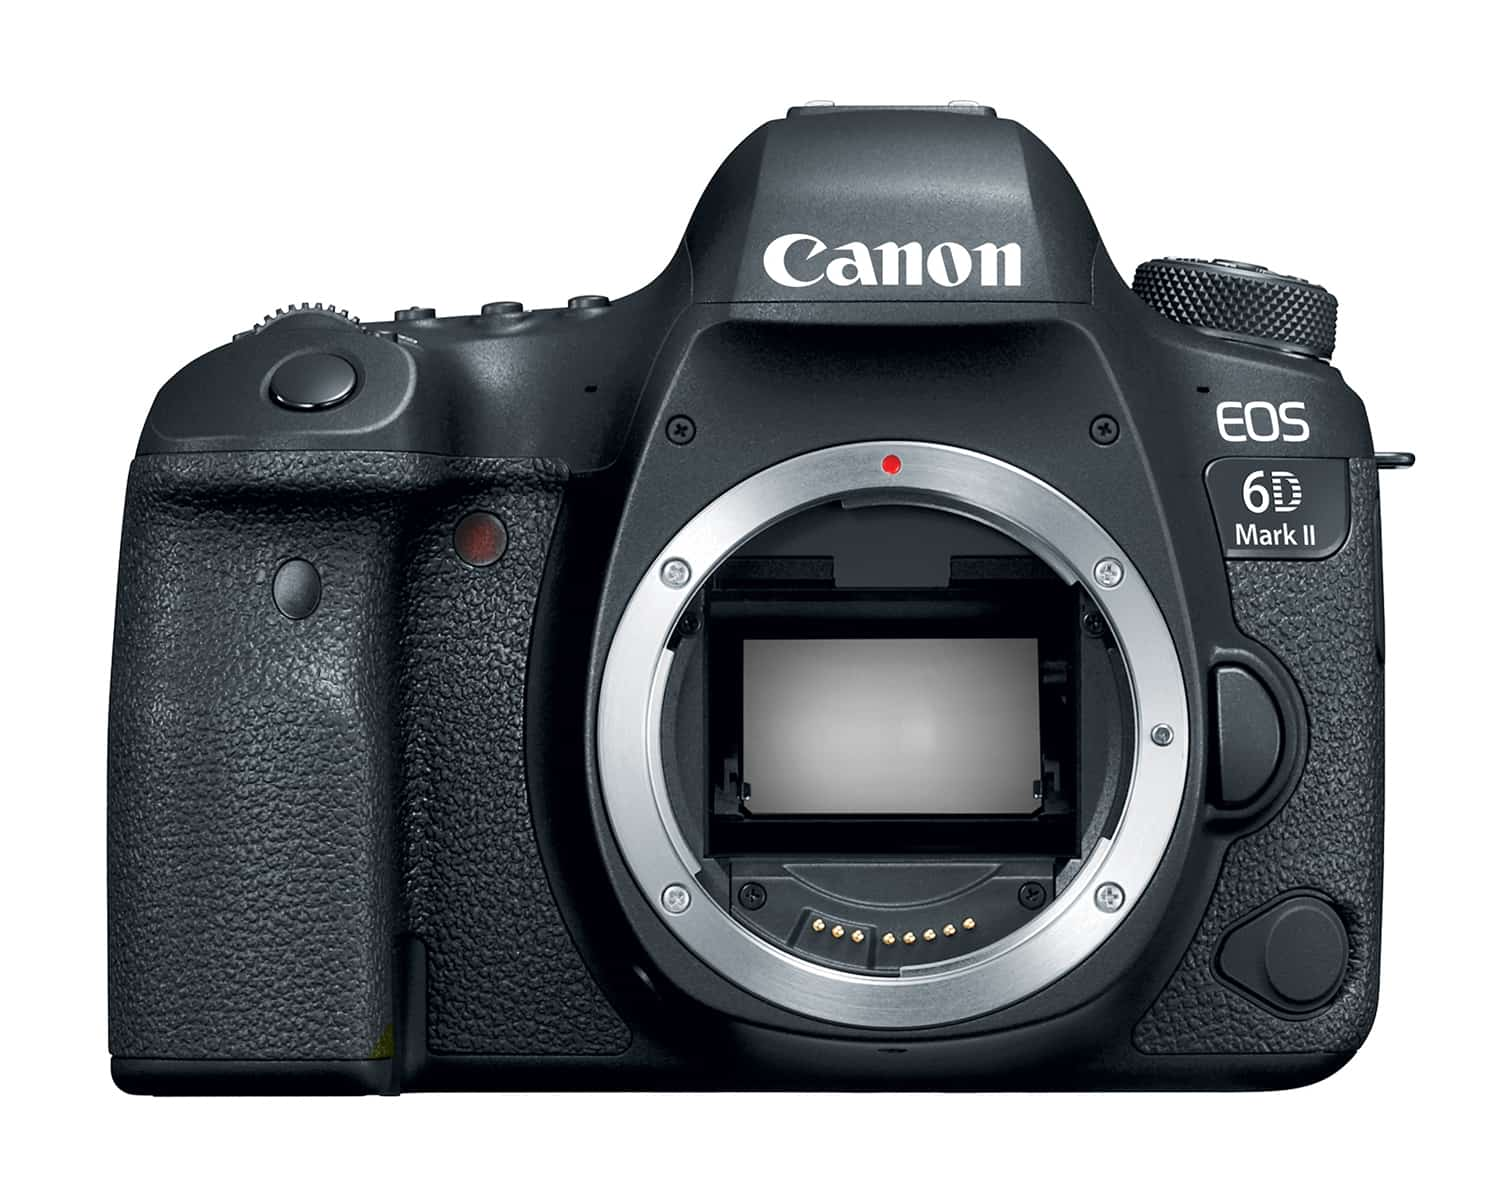 6d markii body front hiRes min image